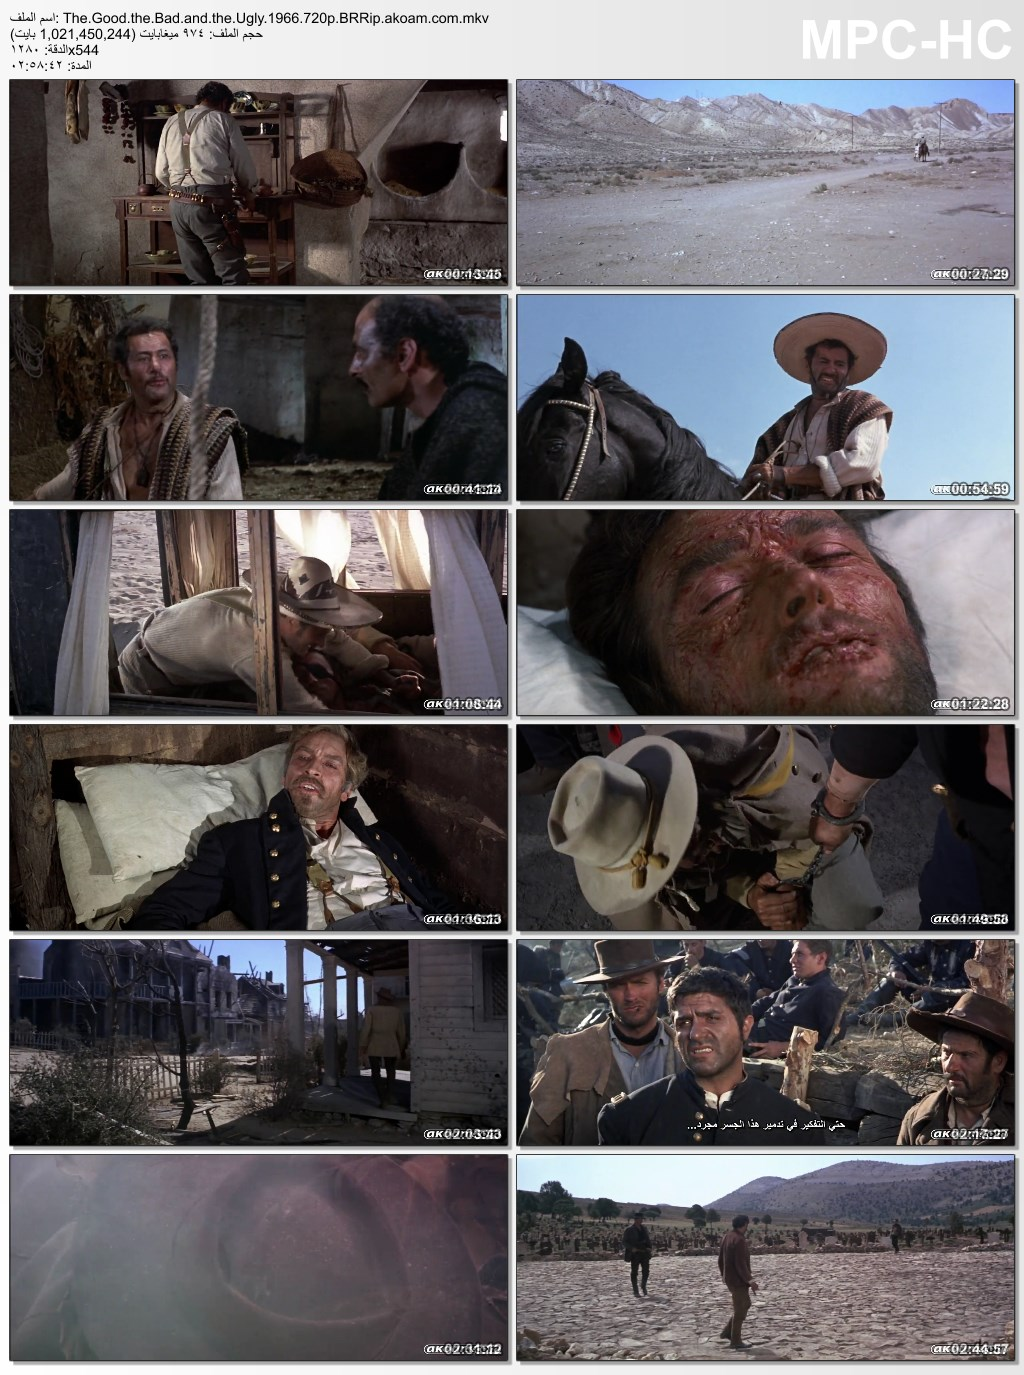 المغامرات,الغربي,Il buono,il brutto,il cattivo,The Good,the Bad and the Ugly